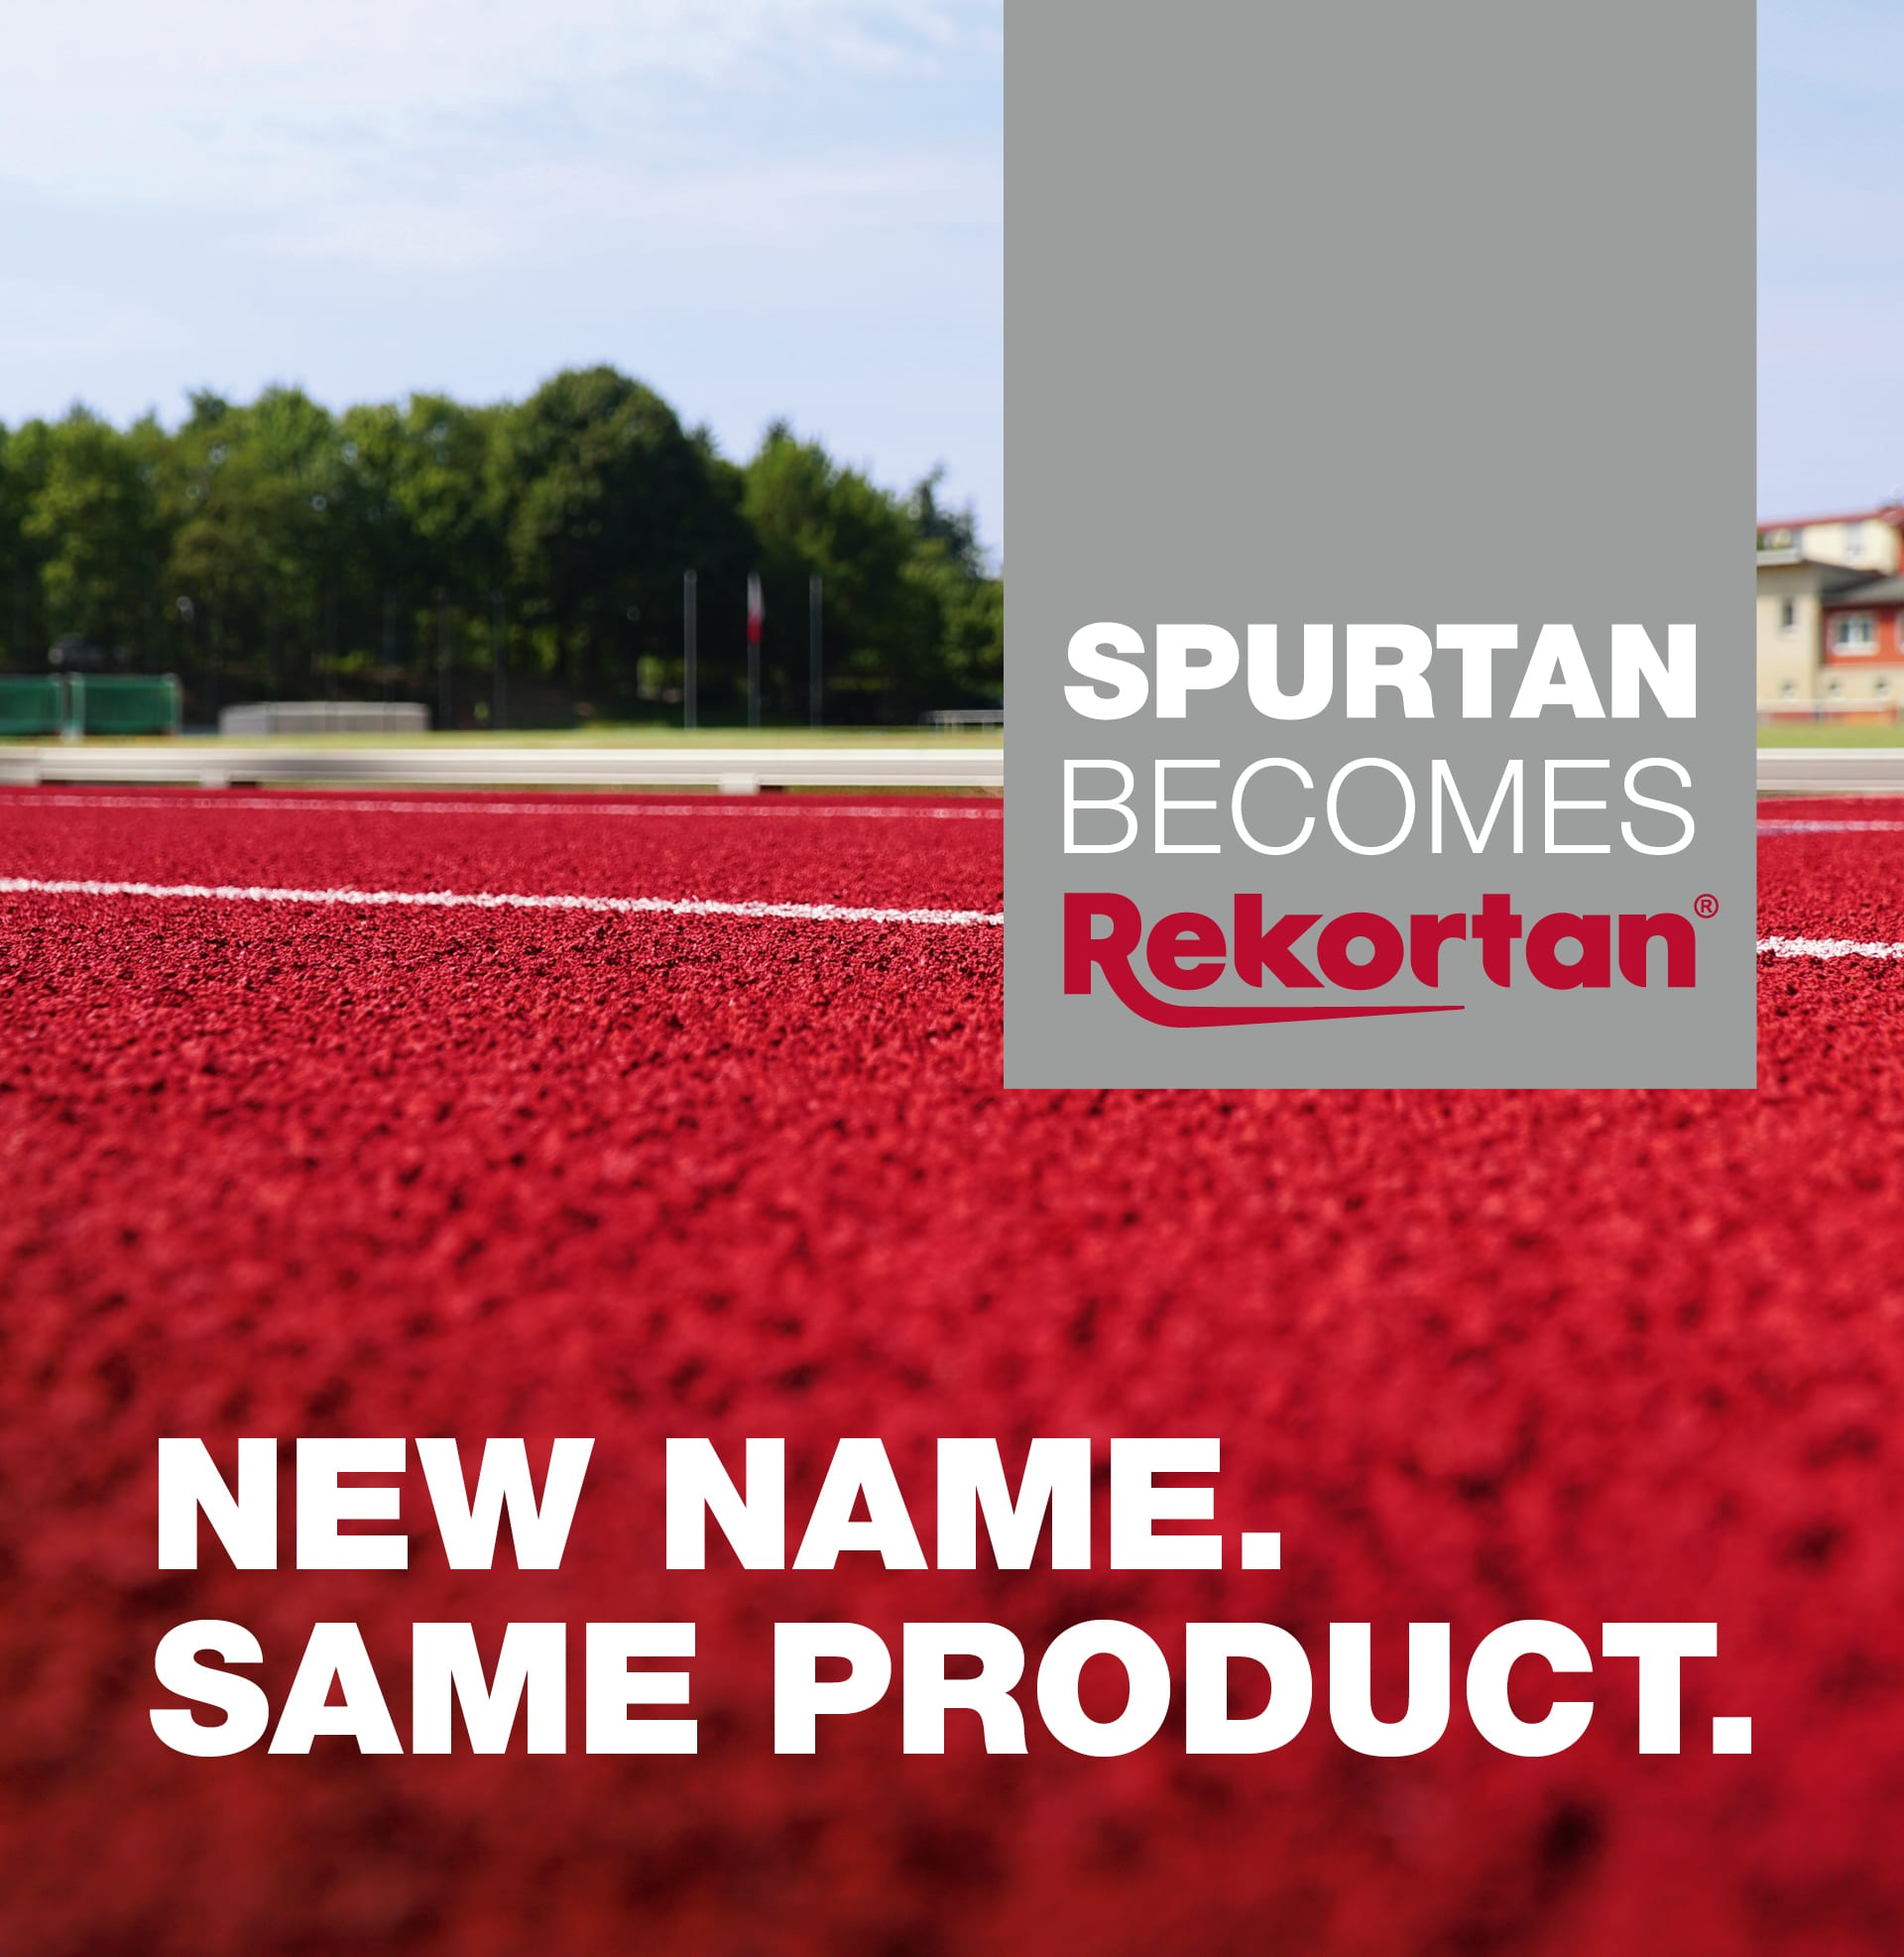 Re-naming Spurtan becomes Rekortan